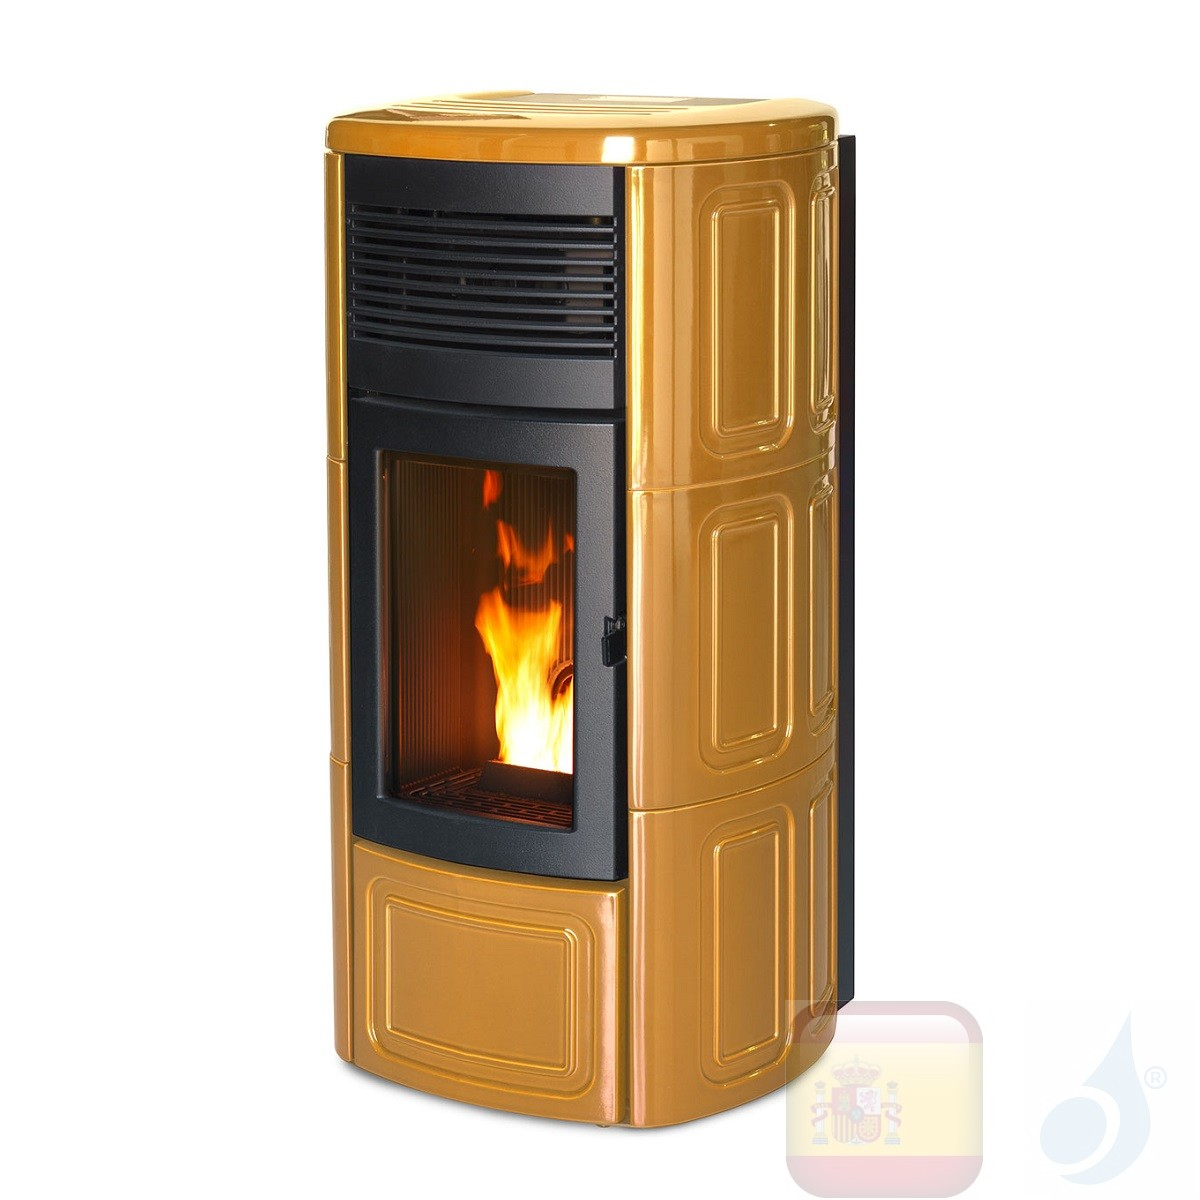 Estufa de pellets MCZ 13.9 kW Suite Comfort Air Matic 14 M1 Old Amber